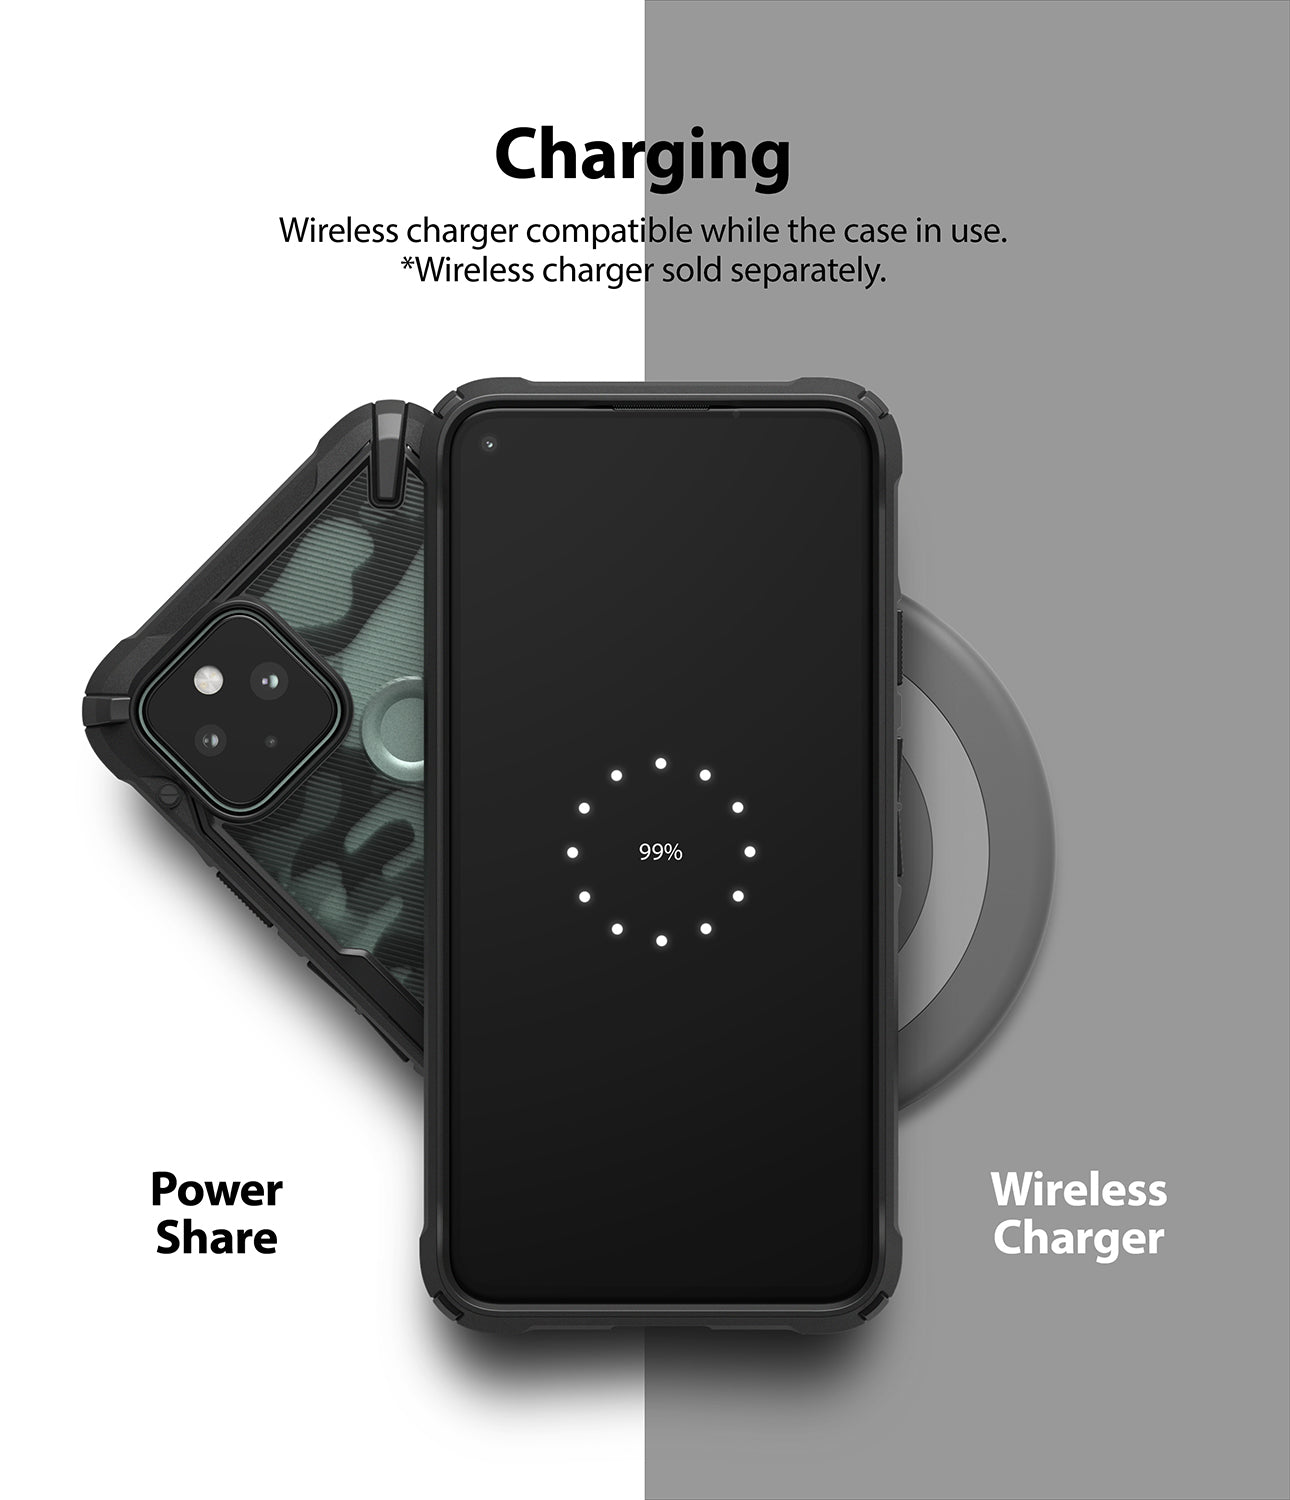 wireless charging compatible (*charging accessories sold separately)